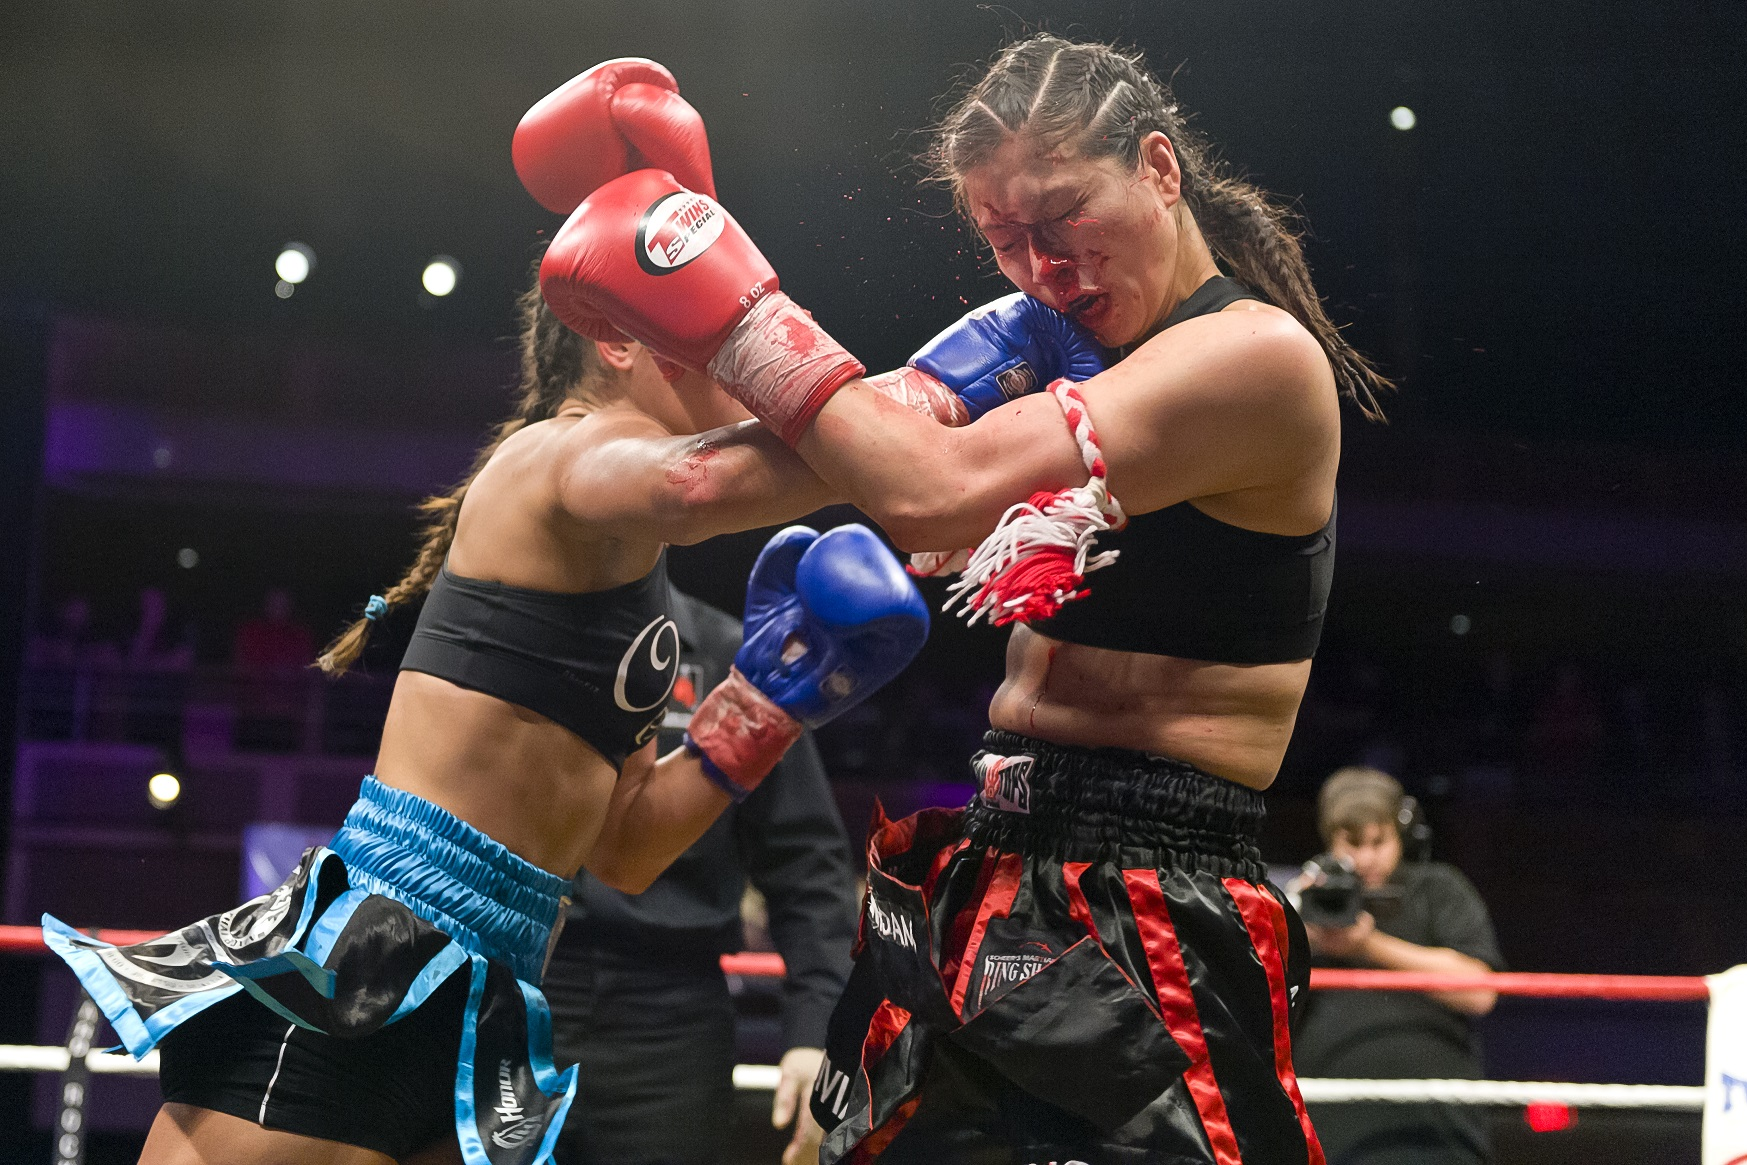 Tiffany Van Soest (Left) vs. Vivian Leung.  Photo by Ray Kasprowicz.